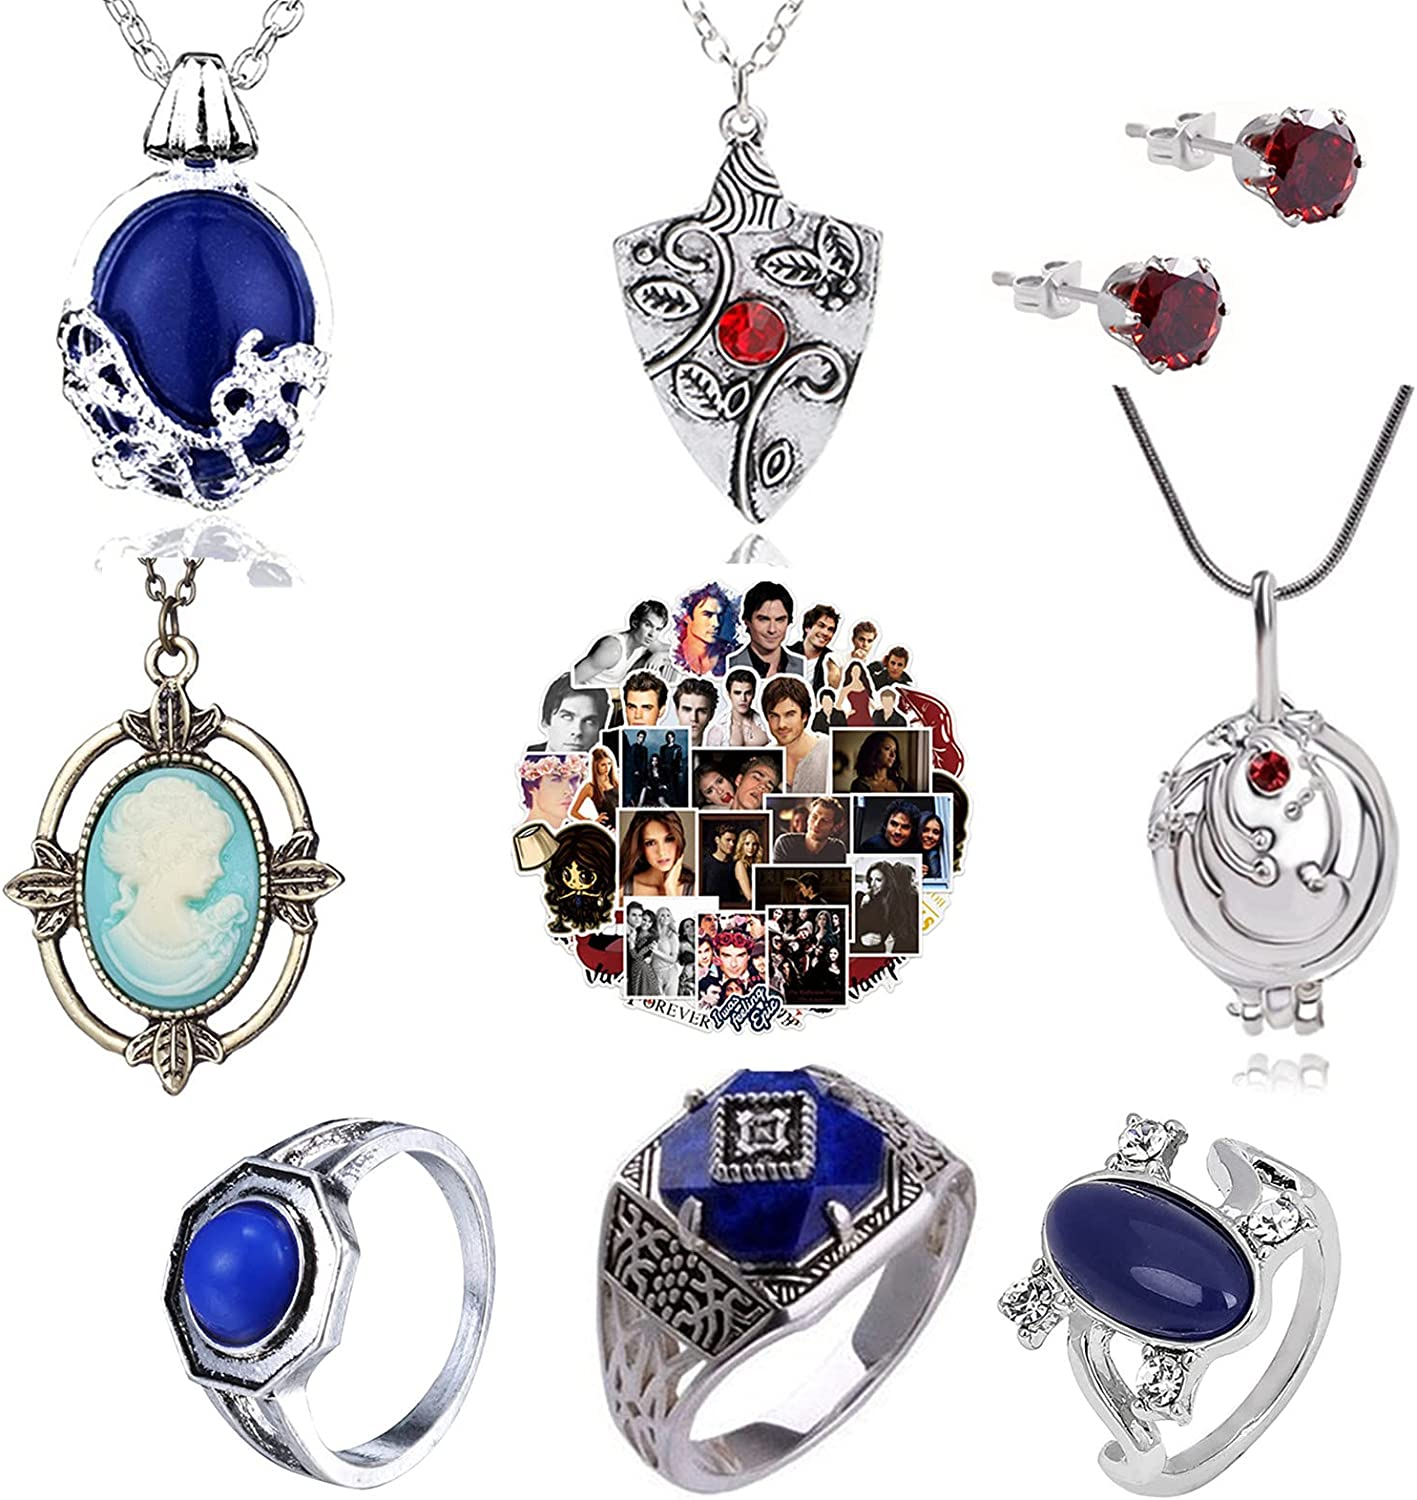 XHBTS 19 Set Replace The Vampire Diaries Daywalking Katherine Sapphire Crystal Pendant Necklaces Ring Earrings and 10 Pcs Vampire Diaries Stickers Movie Jewelry Set Cosplay For Fans